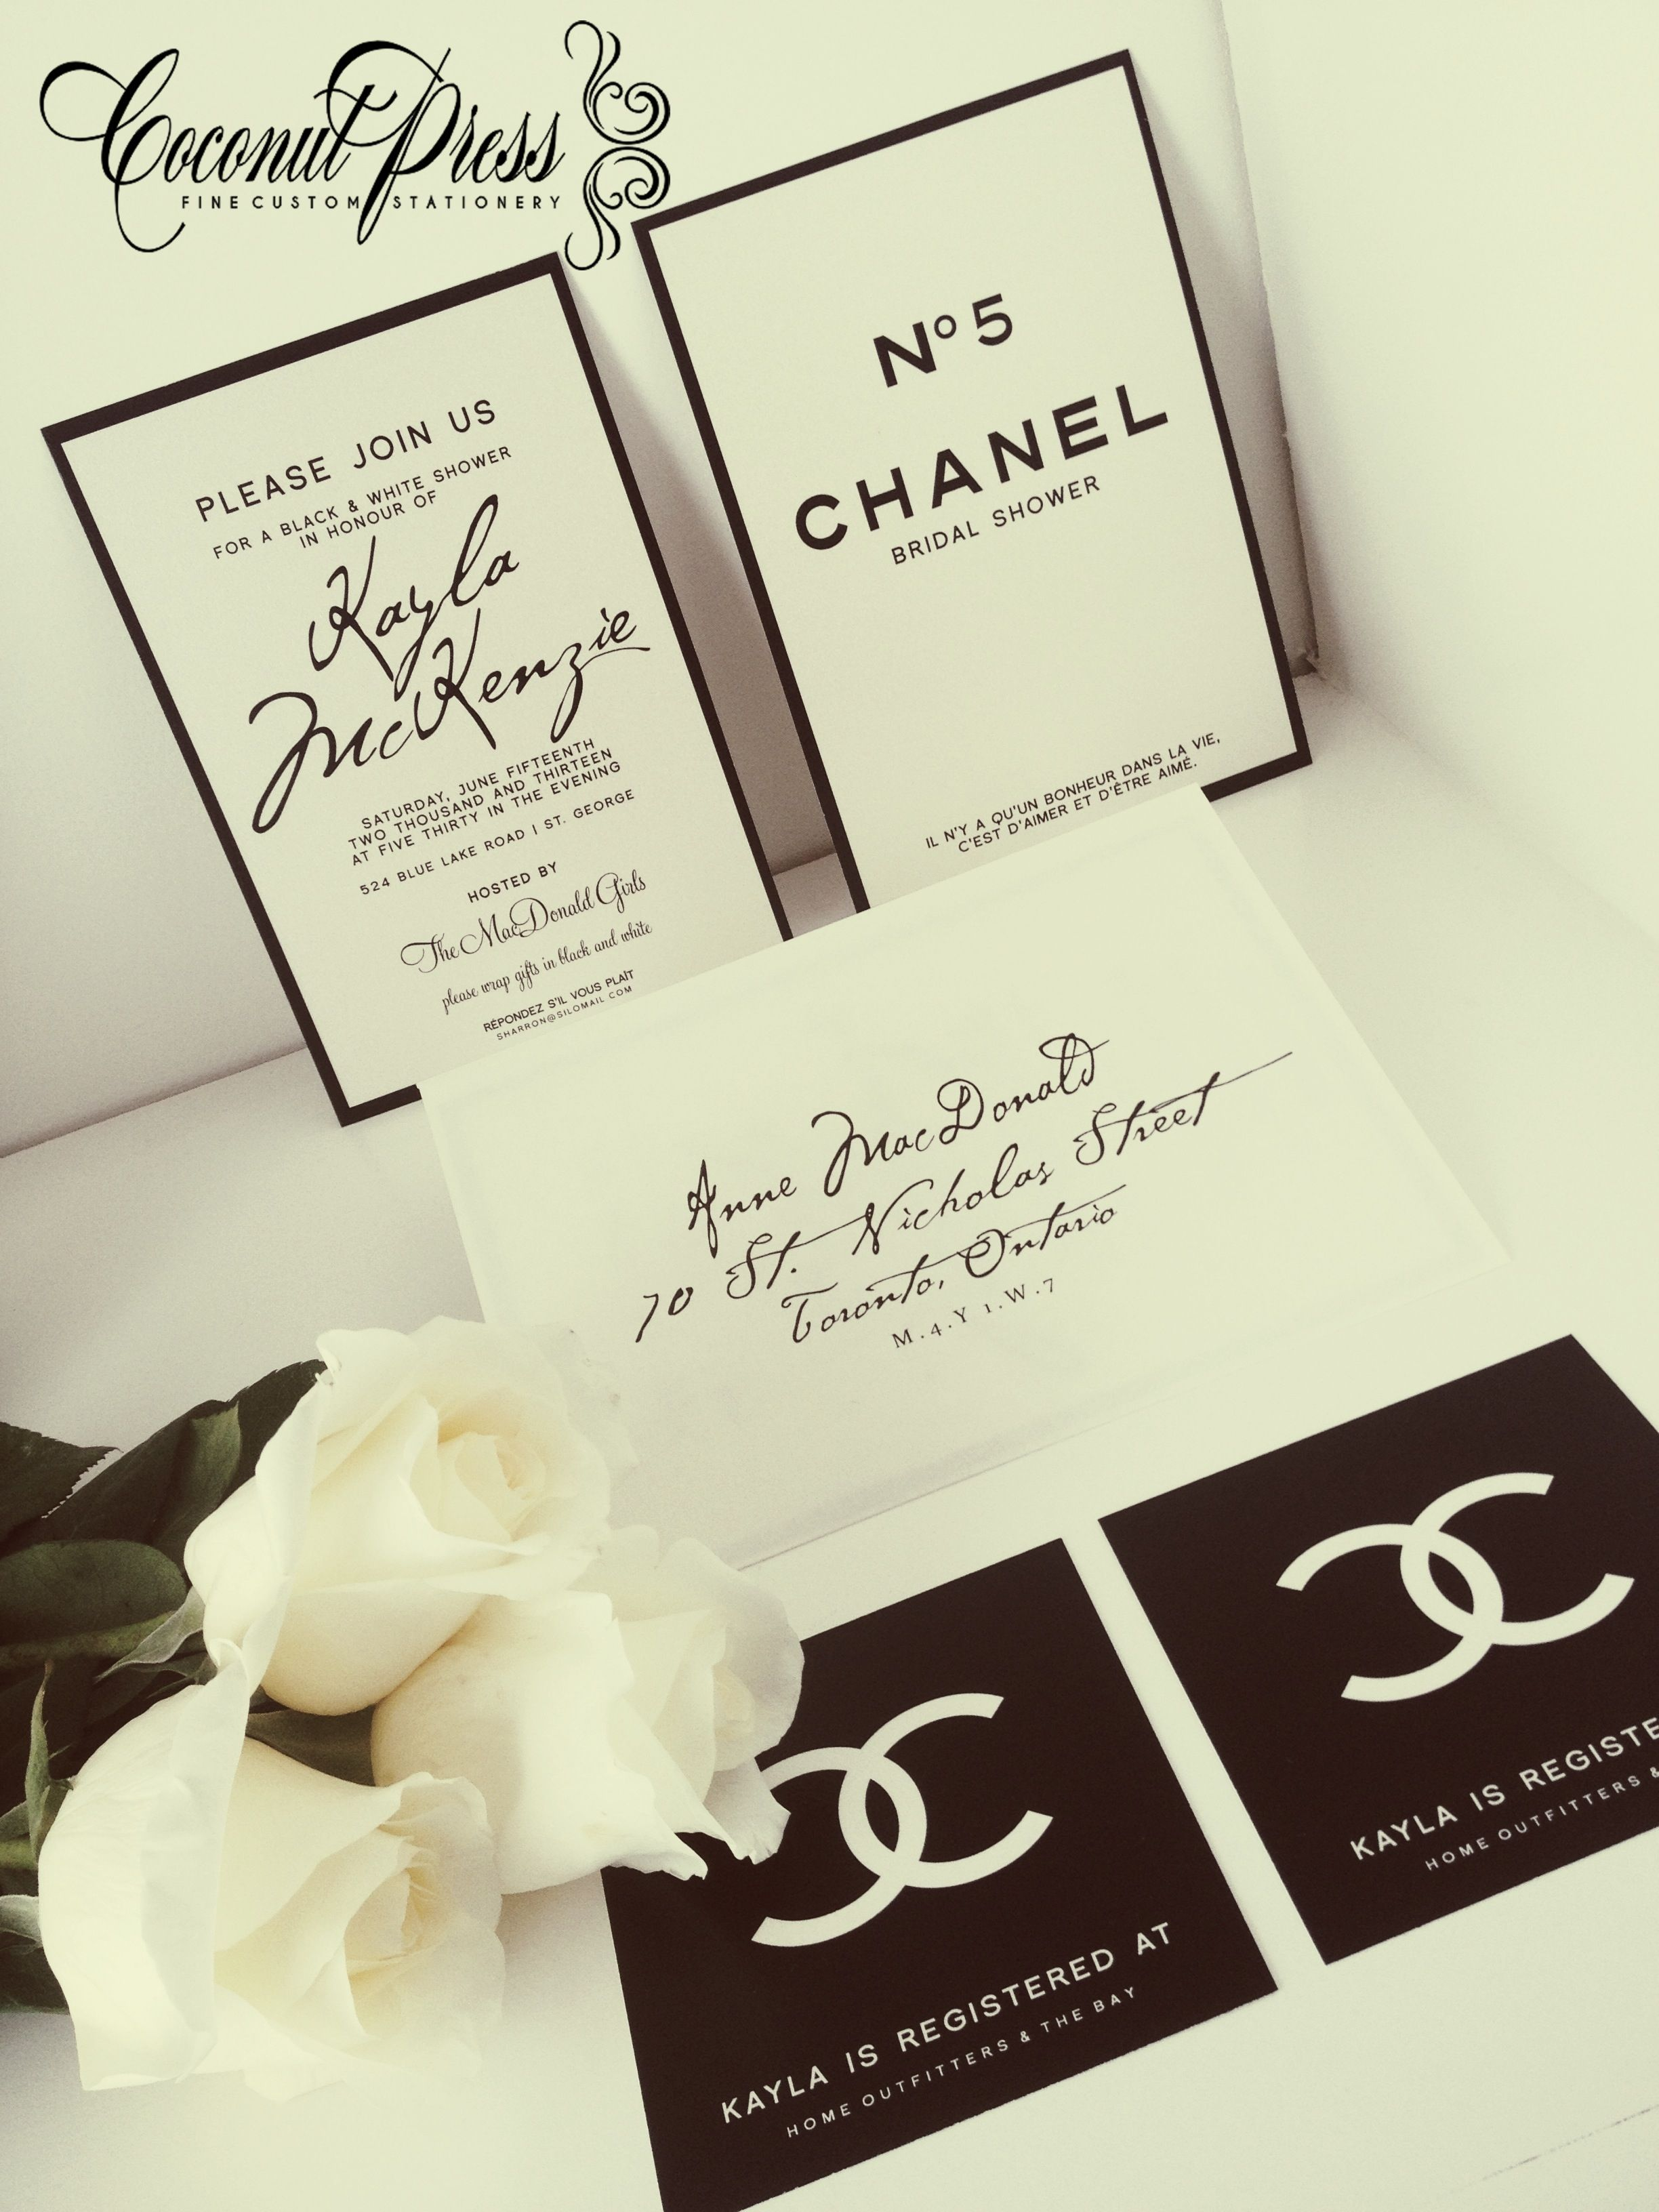 Coco chanel inspired black white shower invitations by coconut coco chanel inspired black white shower invitations by coconut press filmwisefo